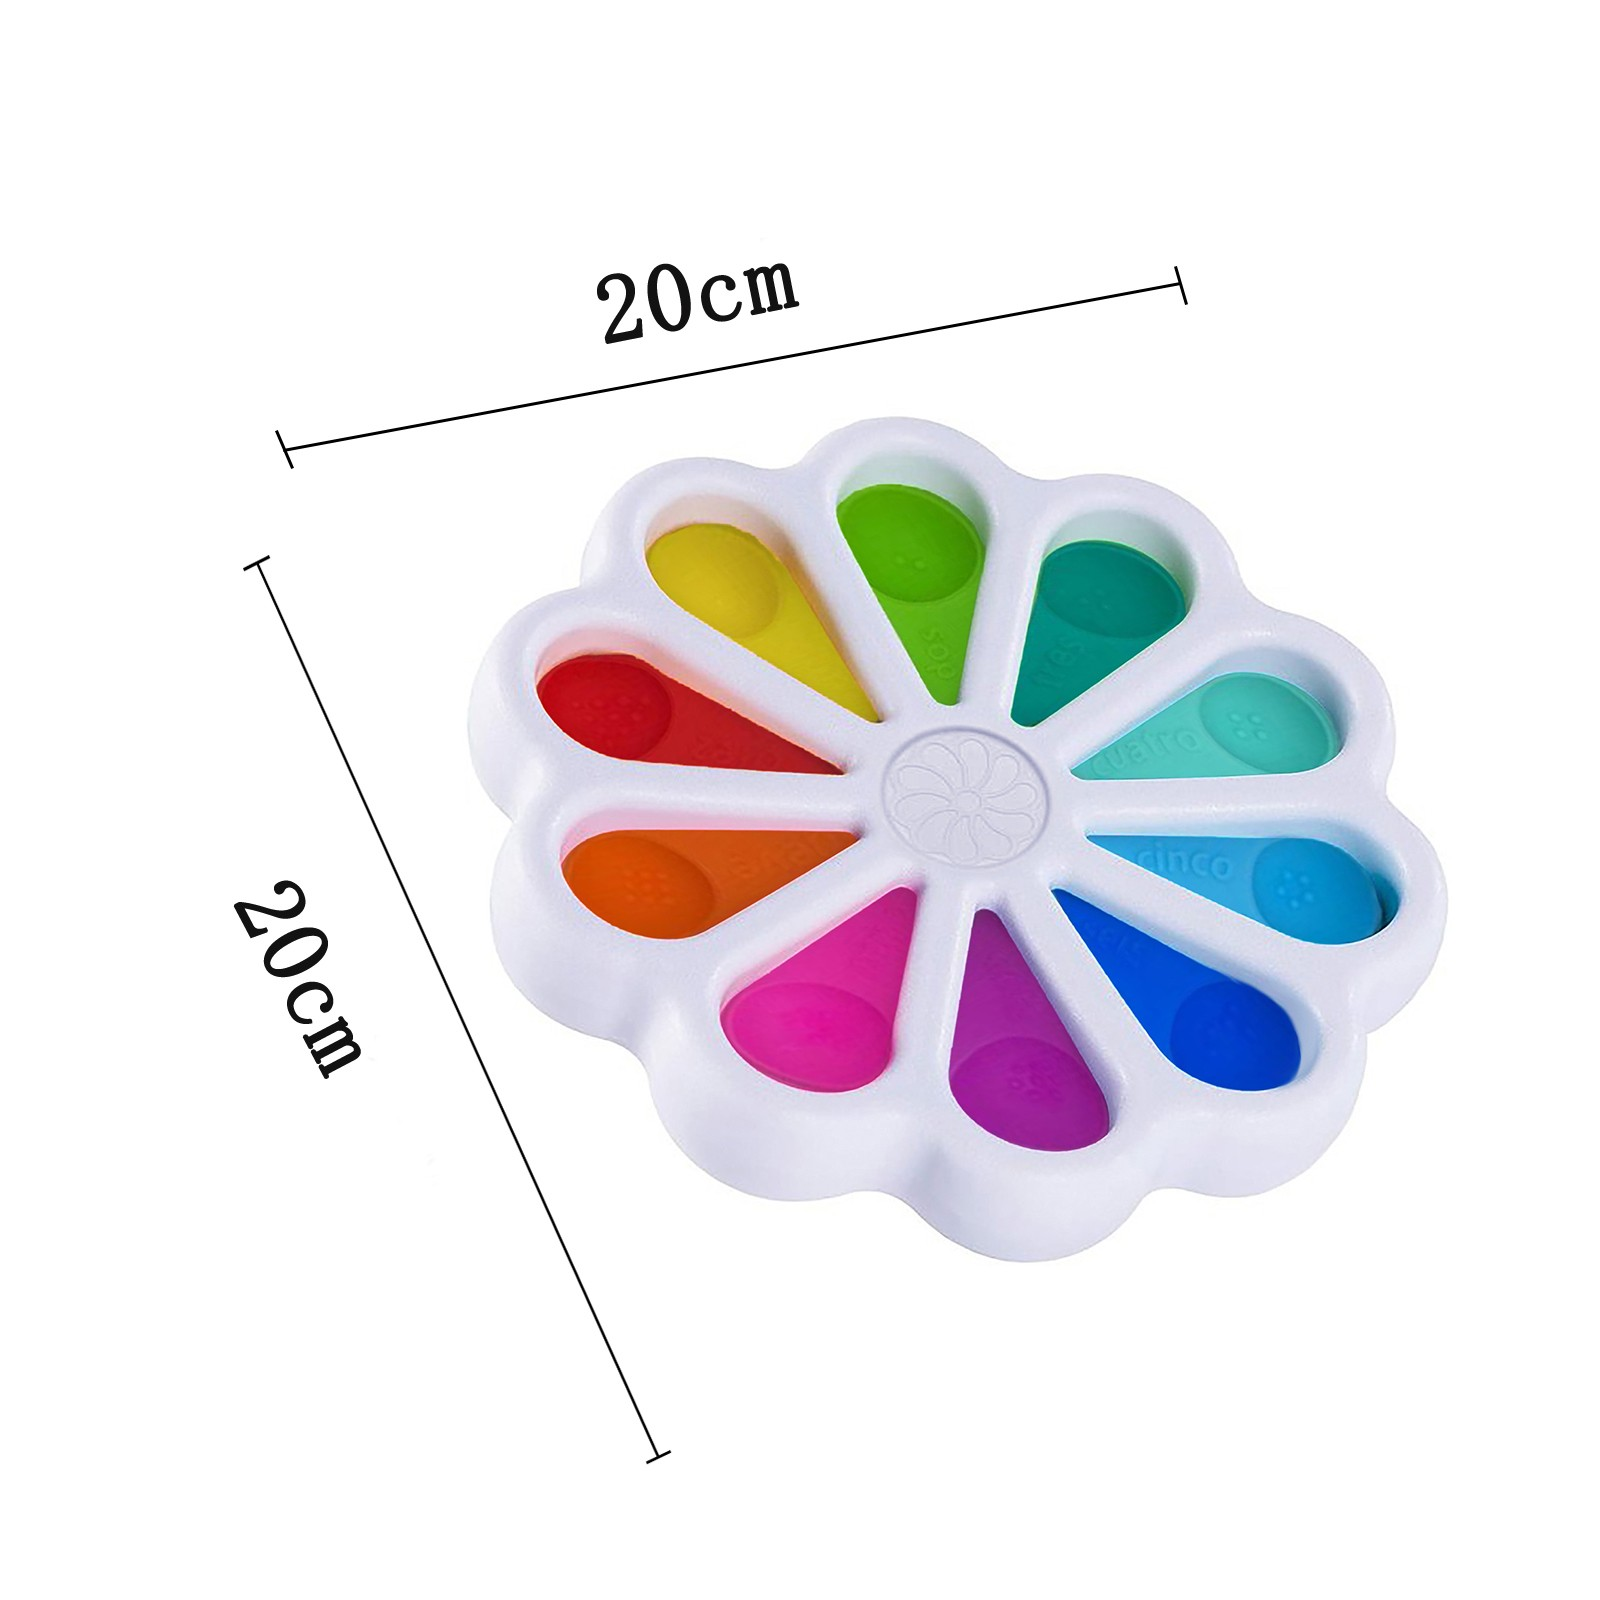 Fidget Simple Antistress Simple Dimple Toy For Kids Adults Heart Shape Silicone Stress img2